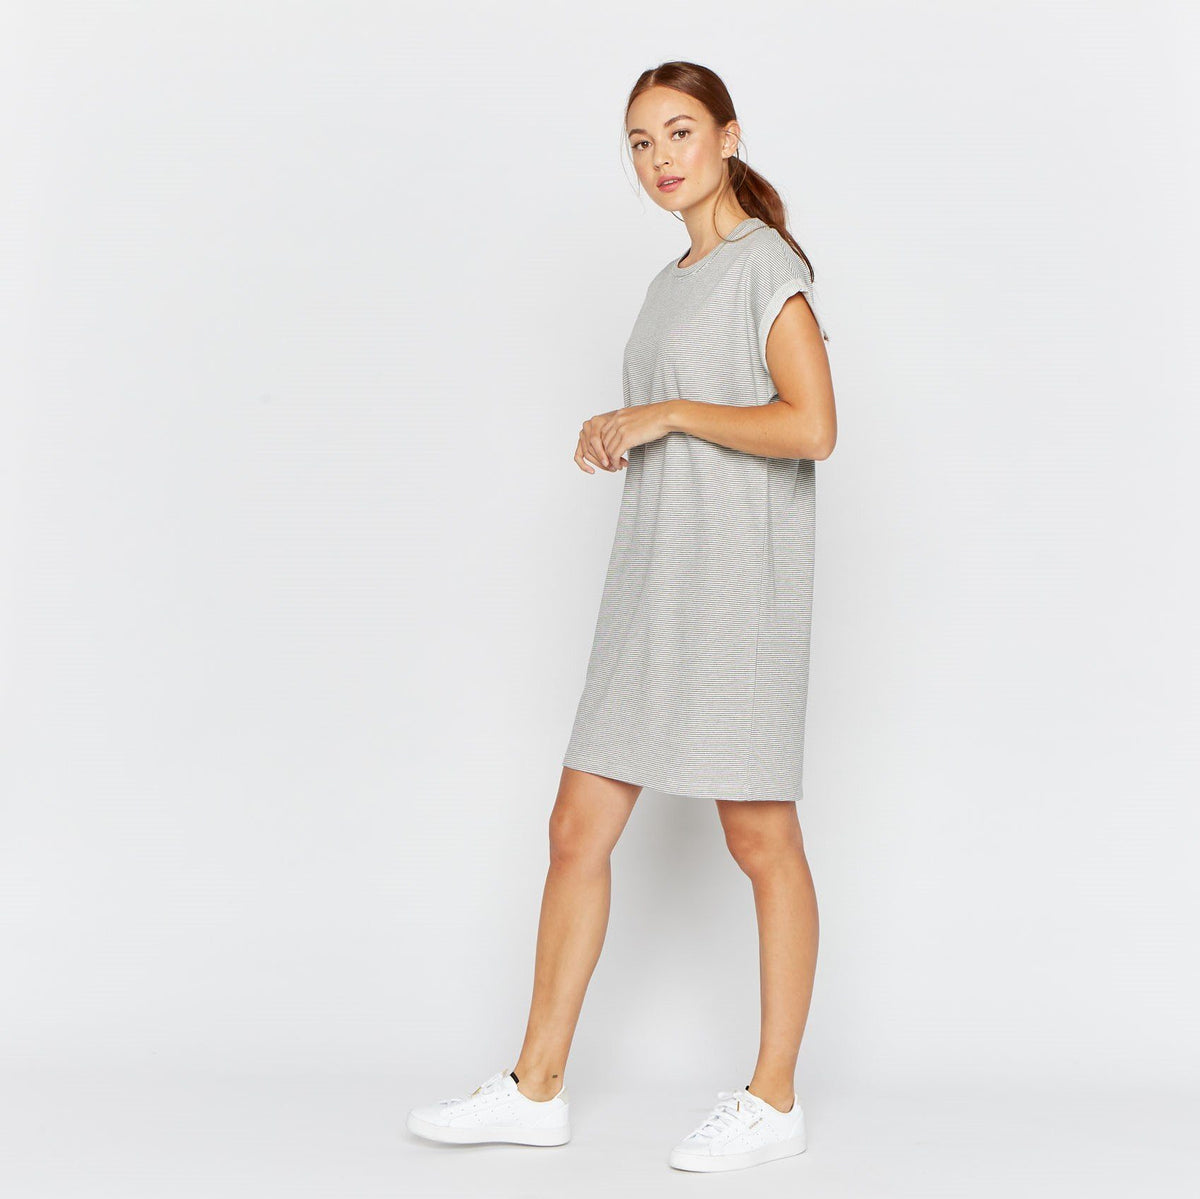 Reed Park Dress Thread & Supply Grey Stripe S